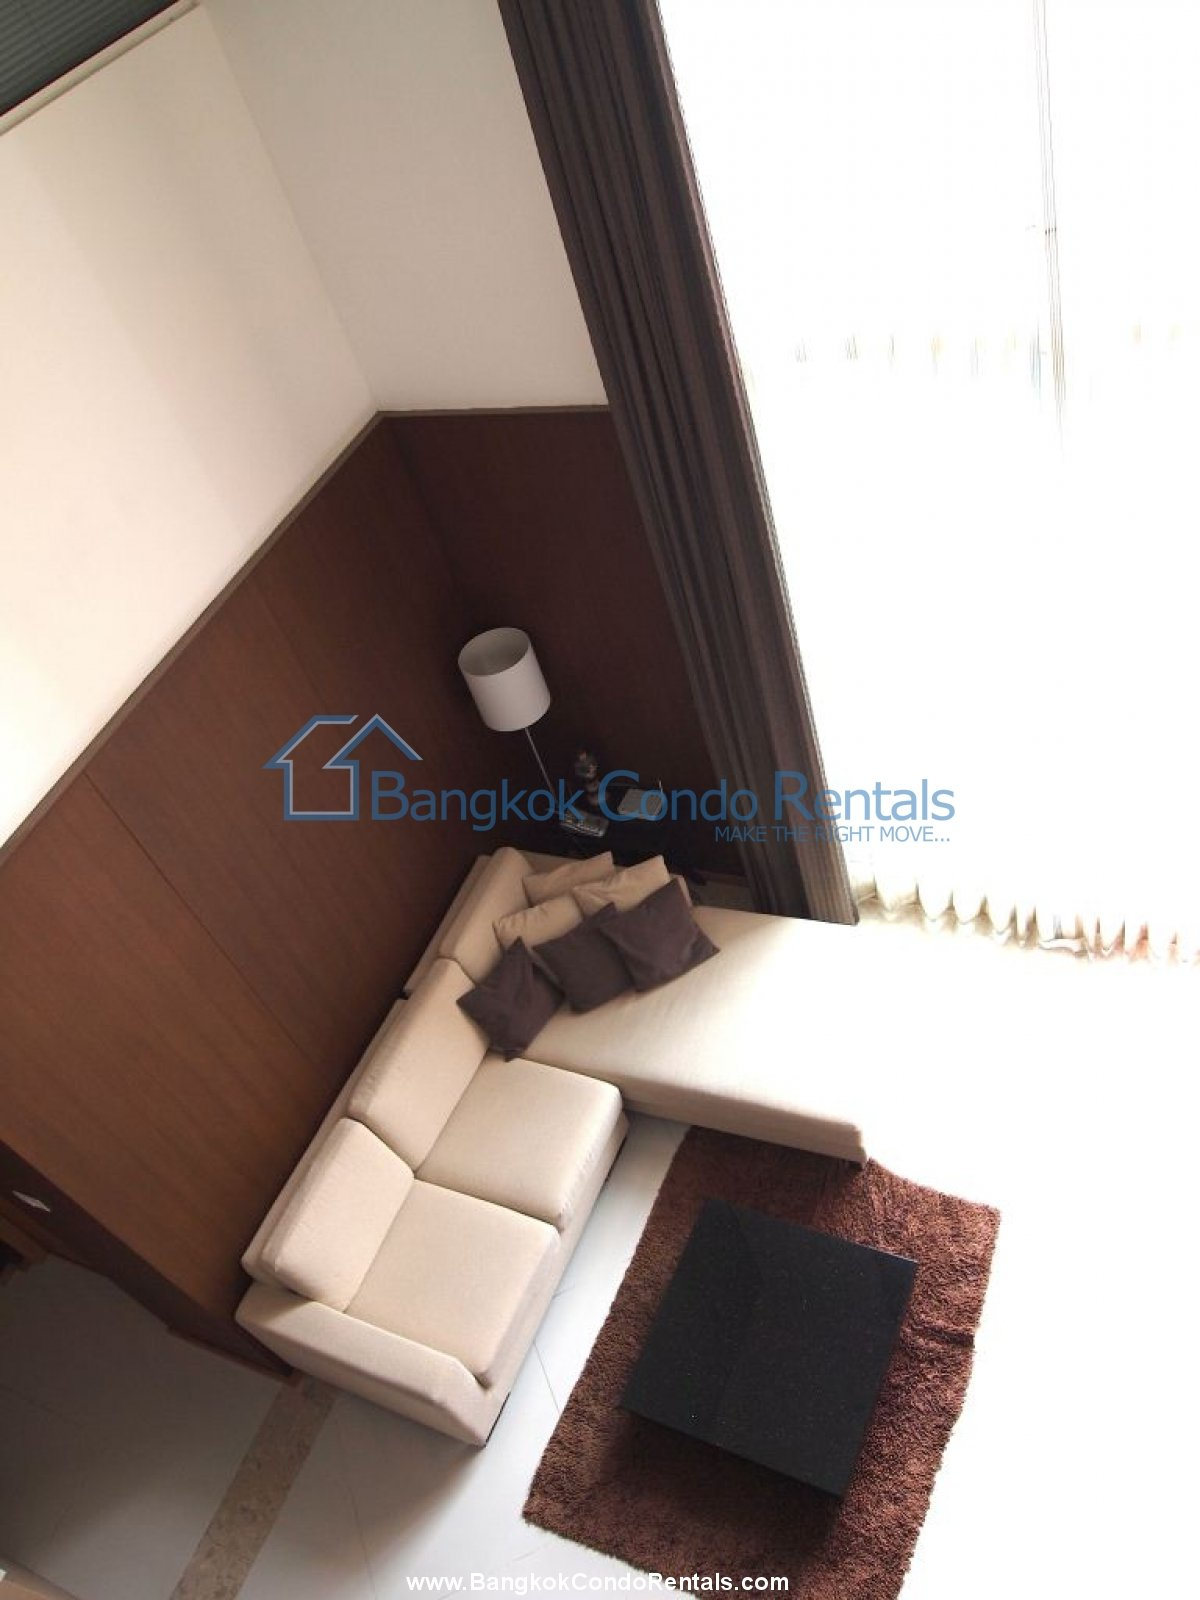 For RENT Condo Chong Nonsi Bangkok Properties by Bangkok Condo Rentals Bangkok Real Estate Bangkok.